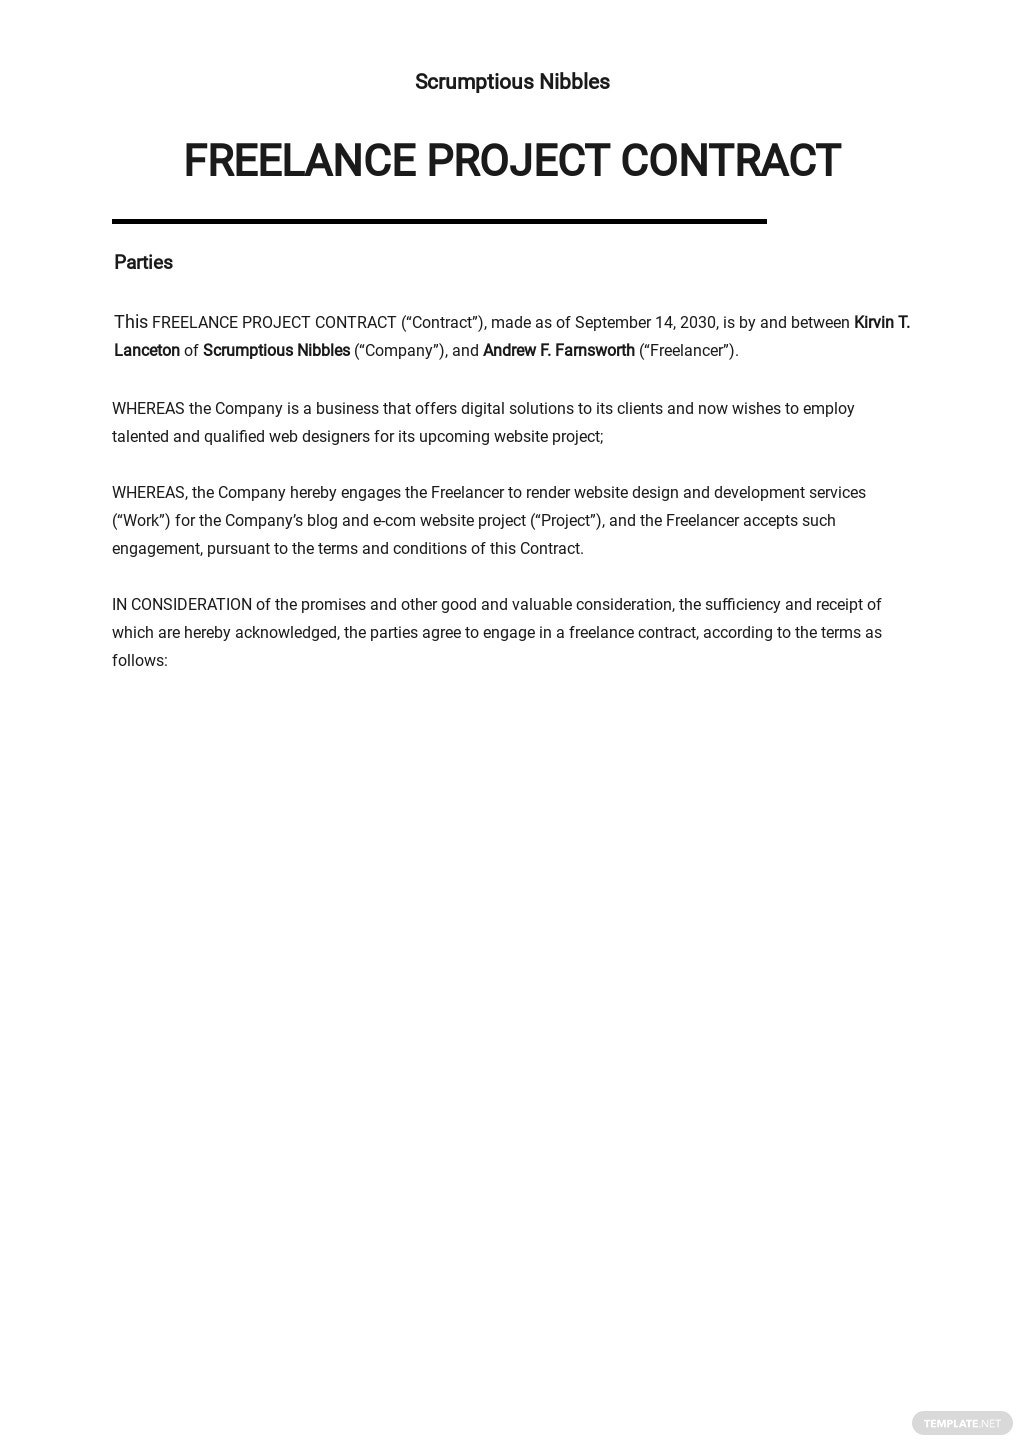 Freelance Project Contract Template.jpe